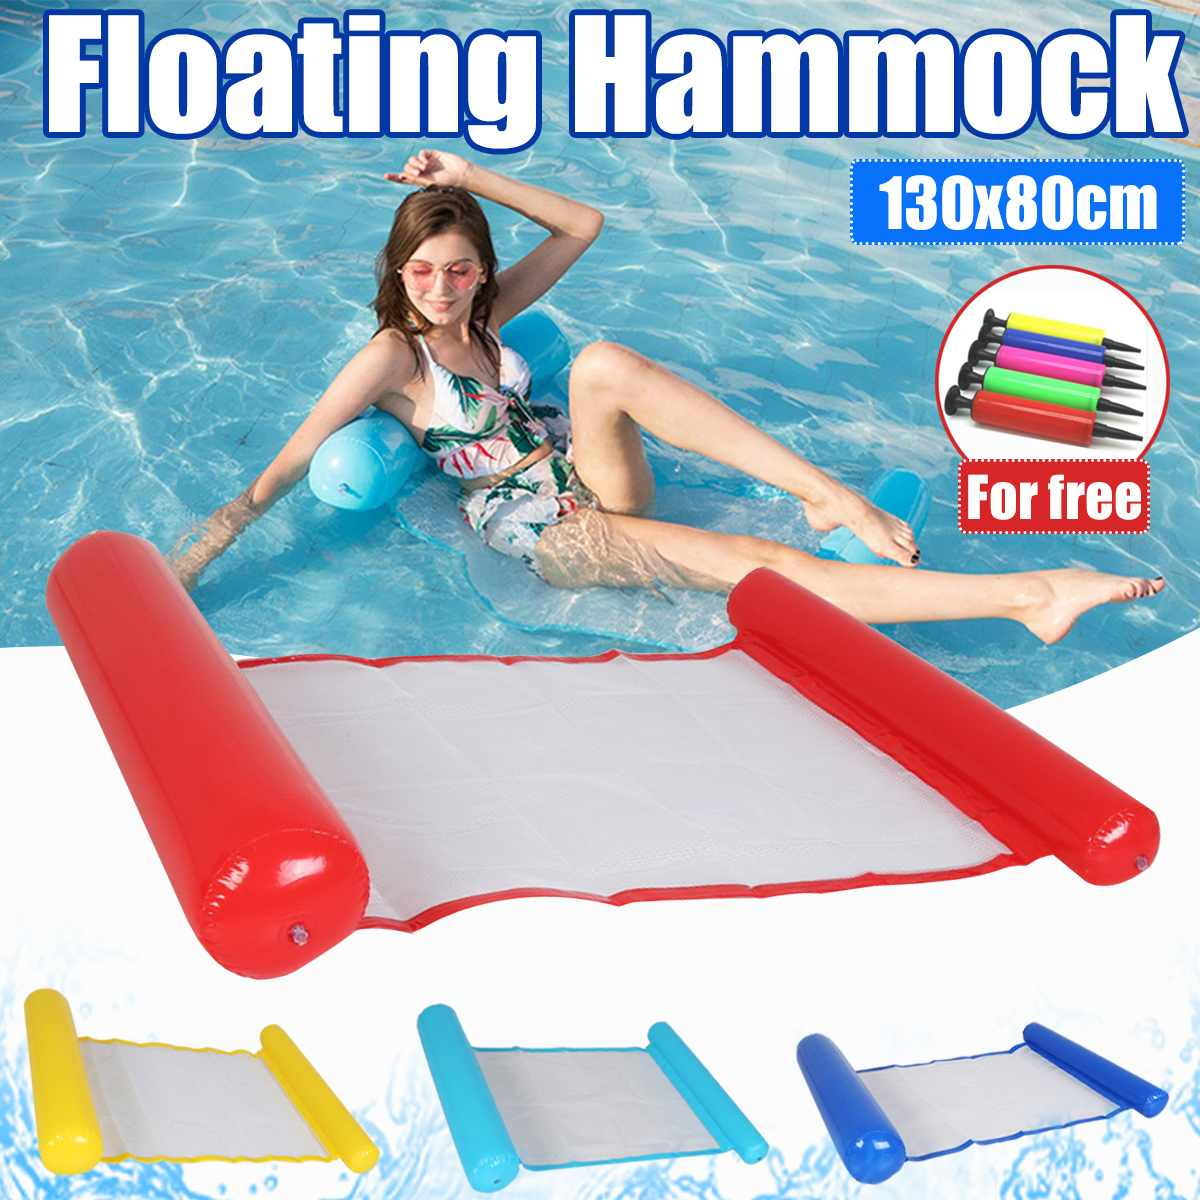 Water hammock recliner inflatable floating Swimming Mattress sea swimming ring Pool Party Toy lounge bed for swimming 2020 1